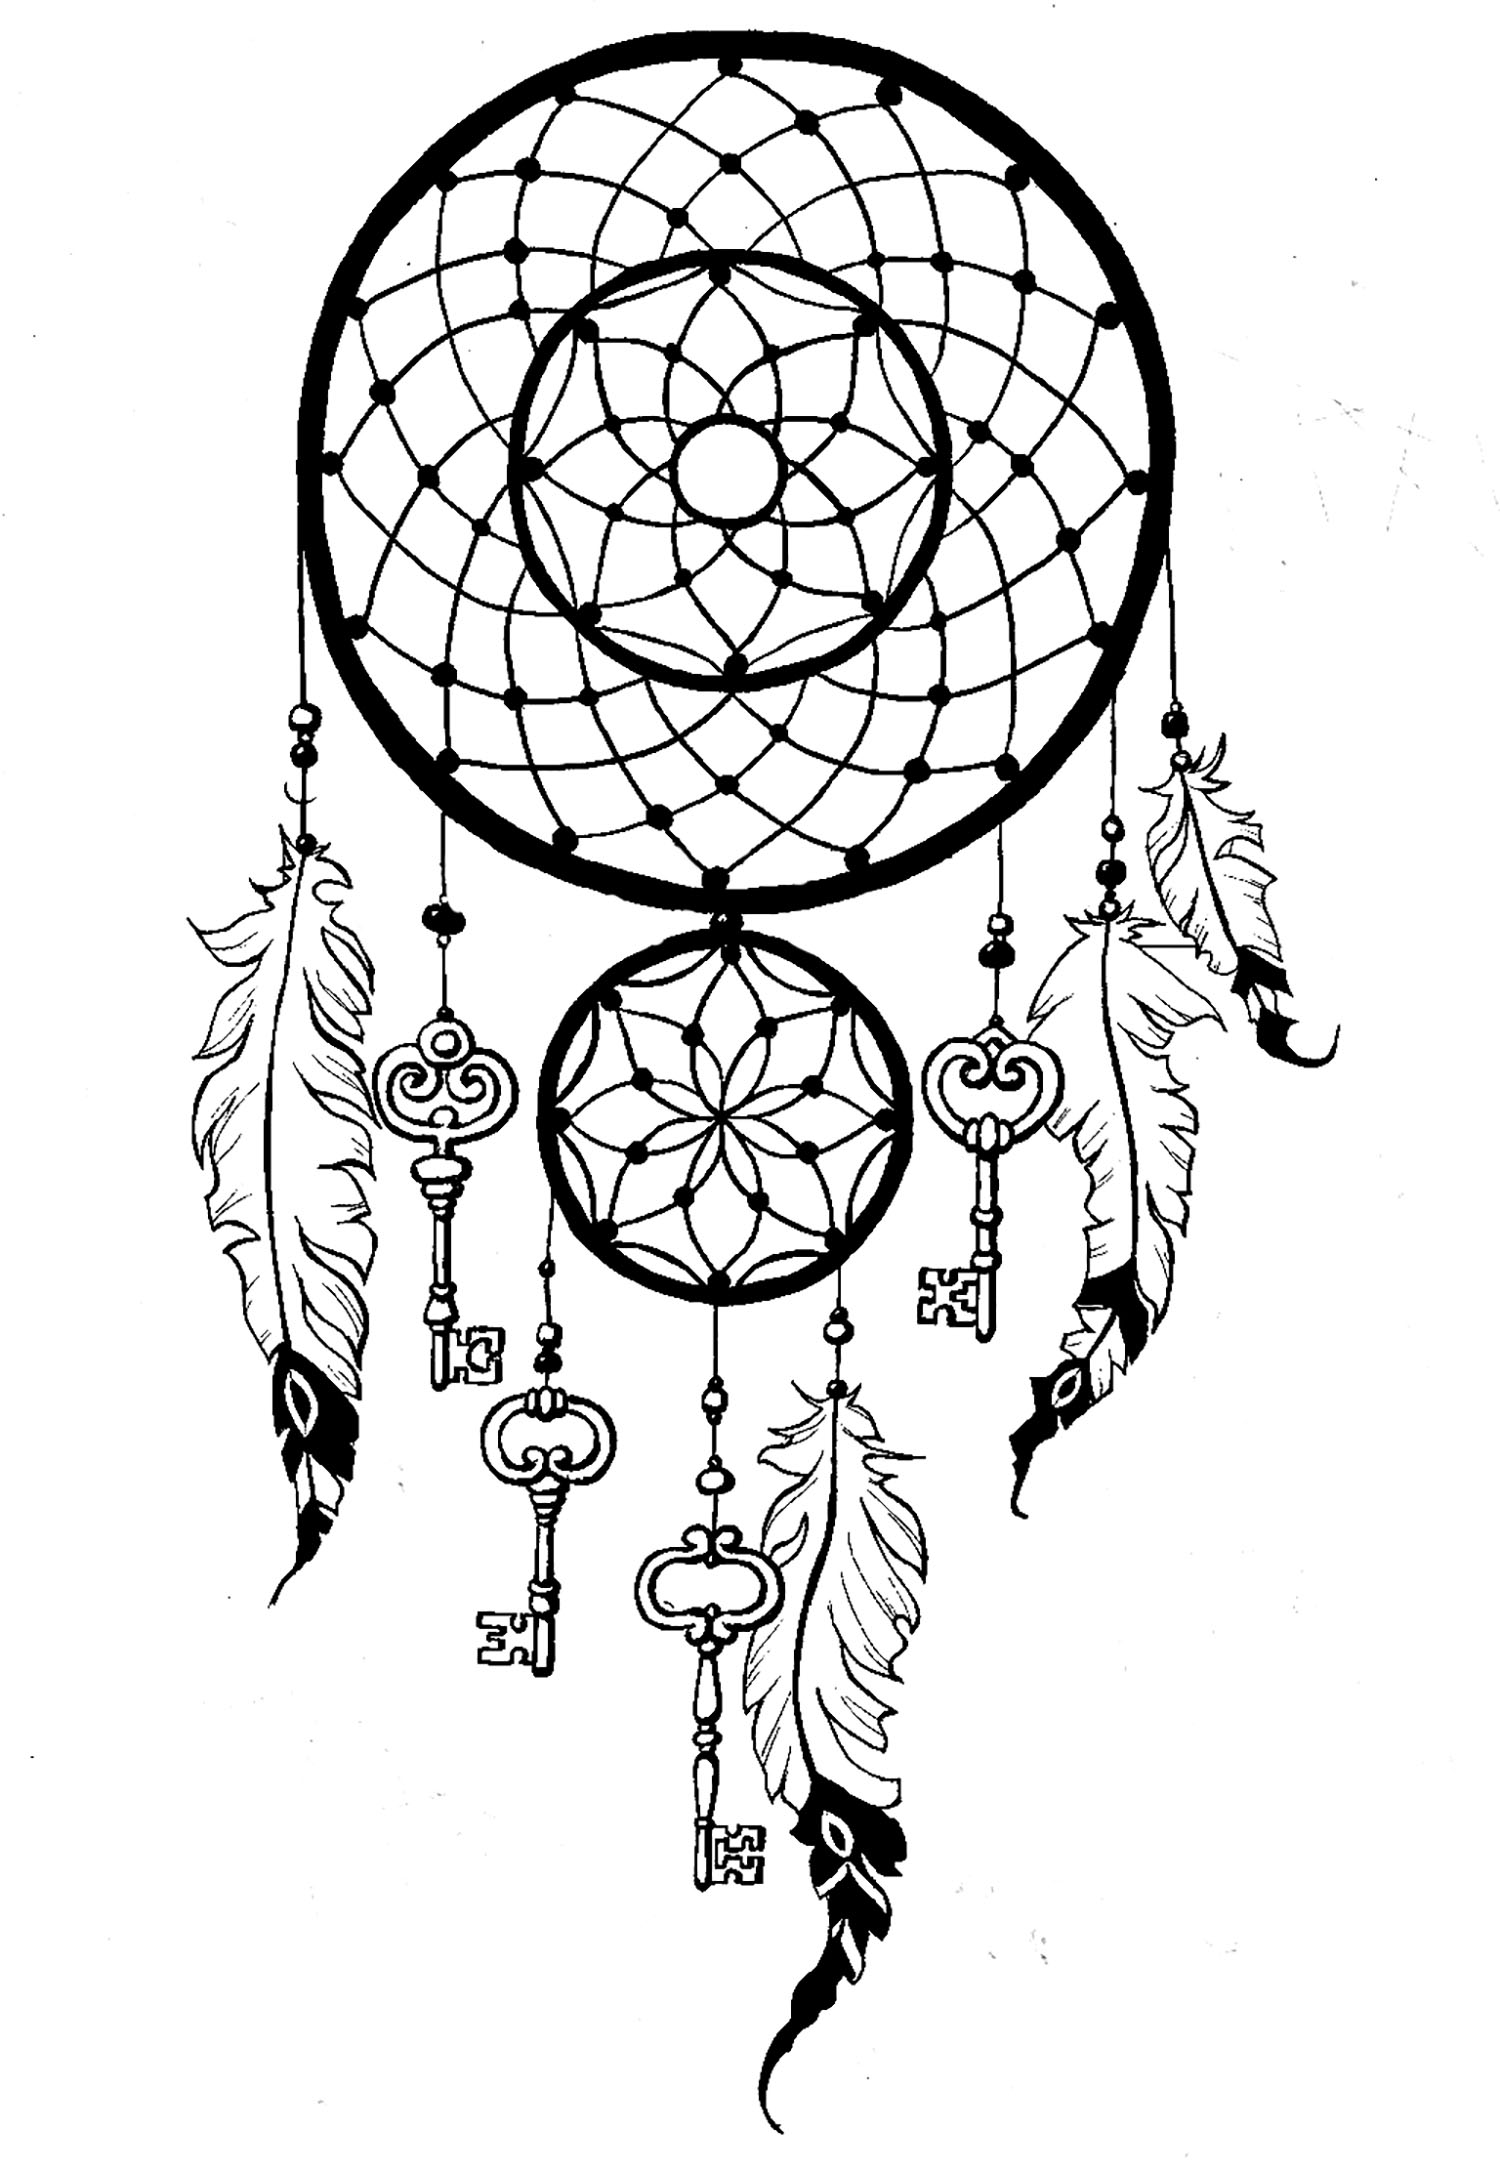 coloring pages for adults dream catchers coloring page for adults moon dream catcher coloring pages dream for coloring catchers adults pages